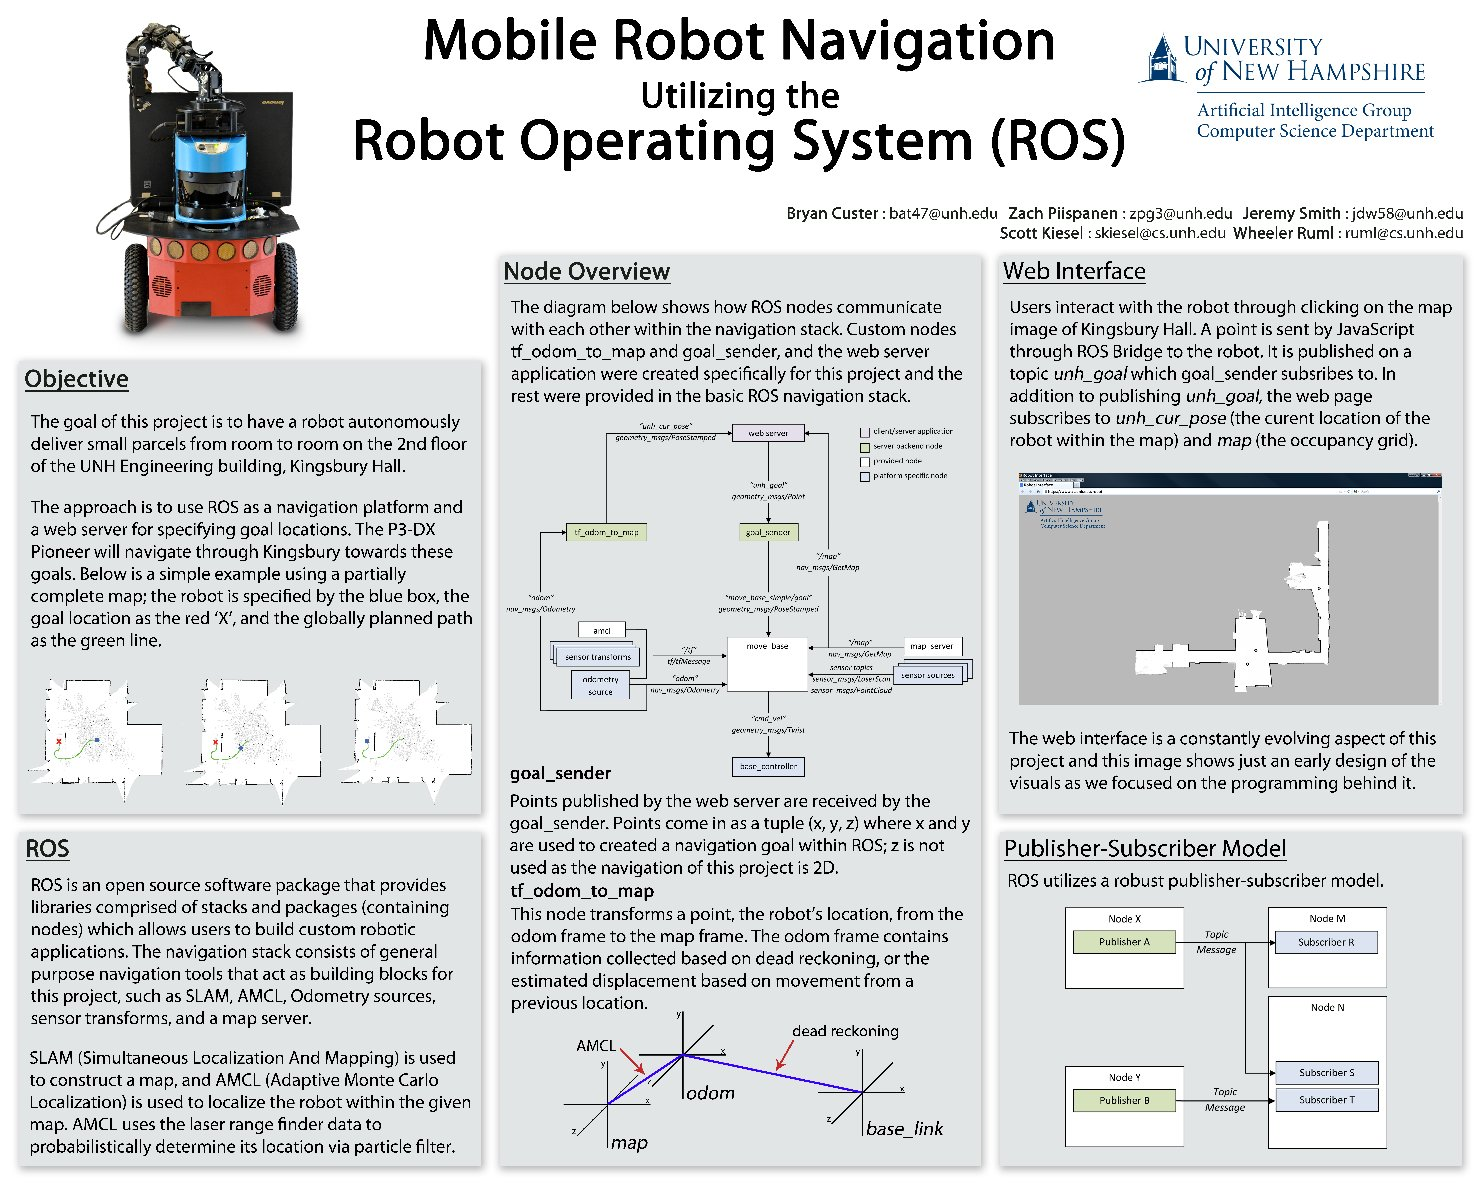 Mobile Robot Navigation Utilizing The Robot Operating System (Ros) by bat47